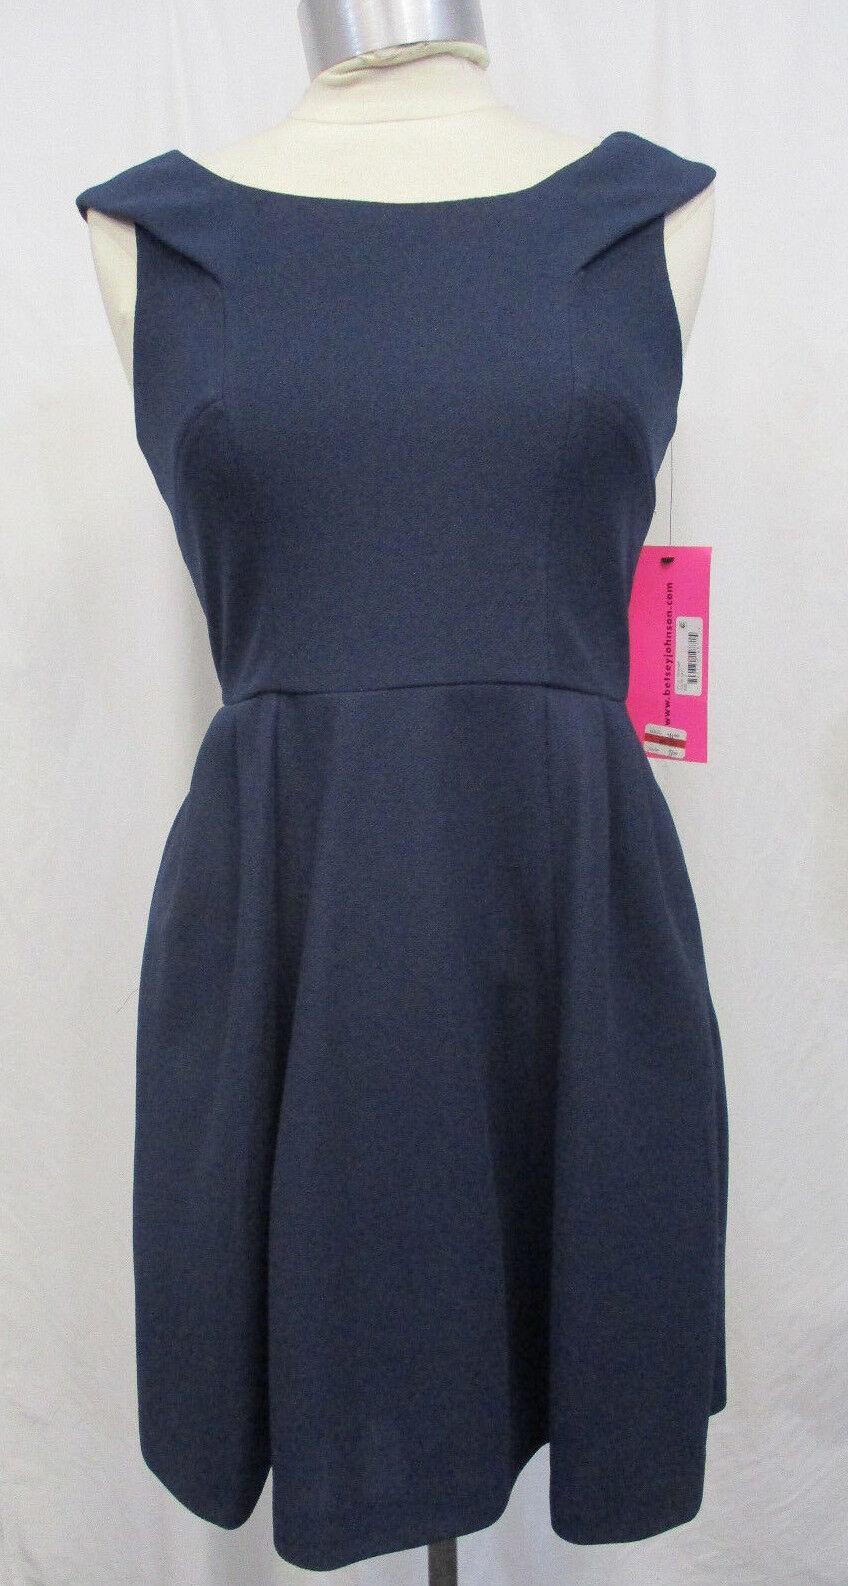 Women Betsey Johnson Size 4 Navy bluee Collared Dress MSRP  158 17 347